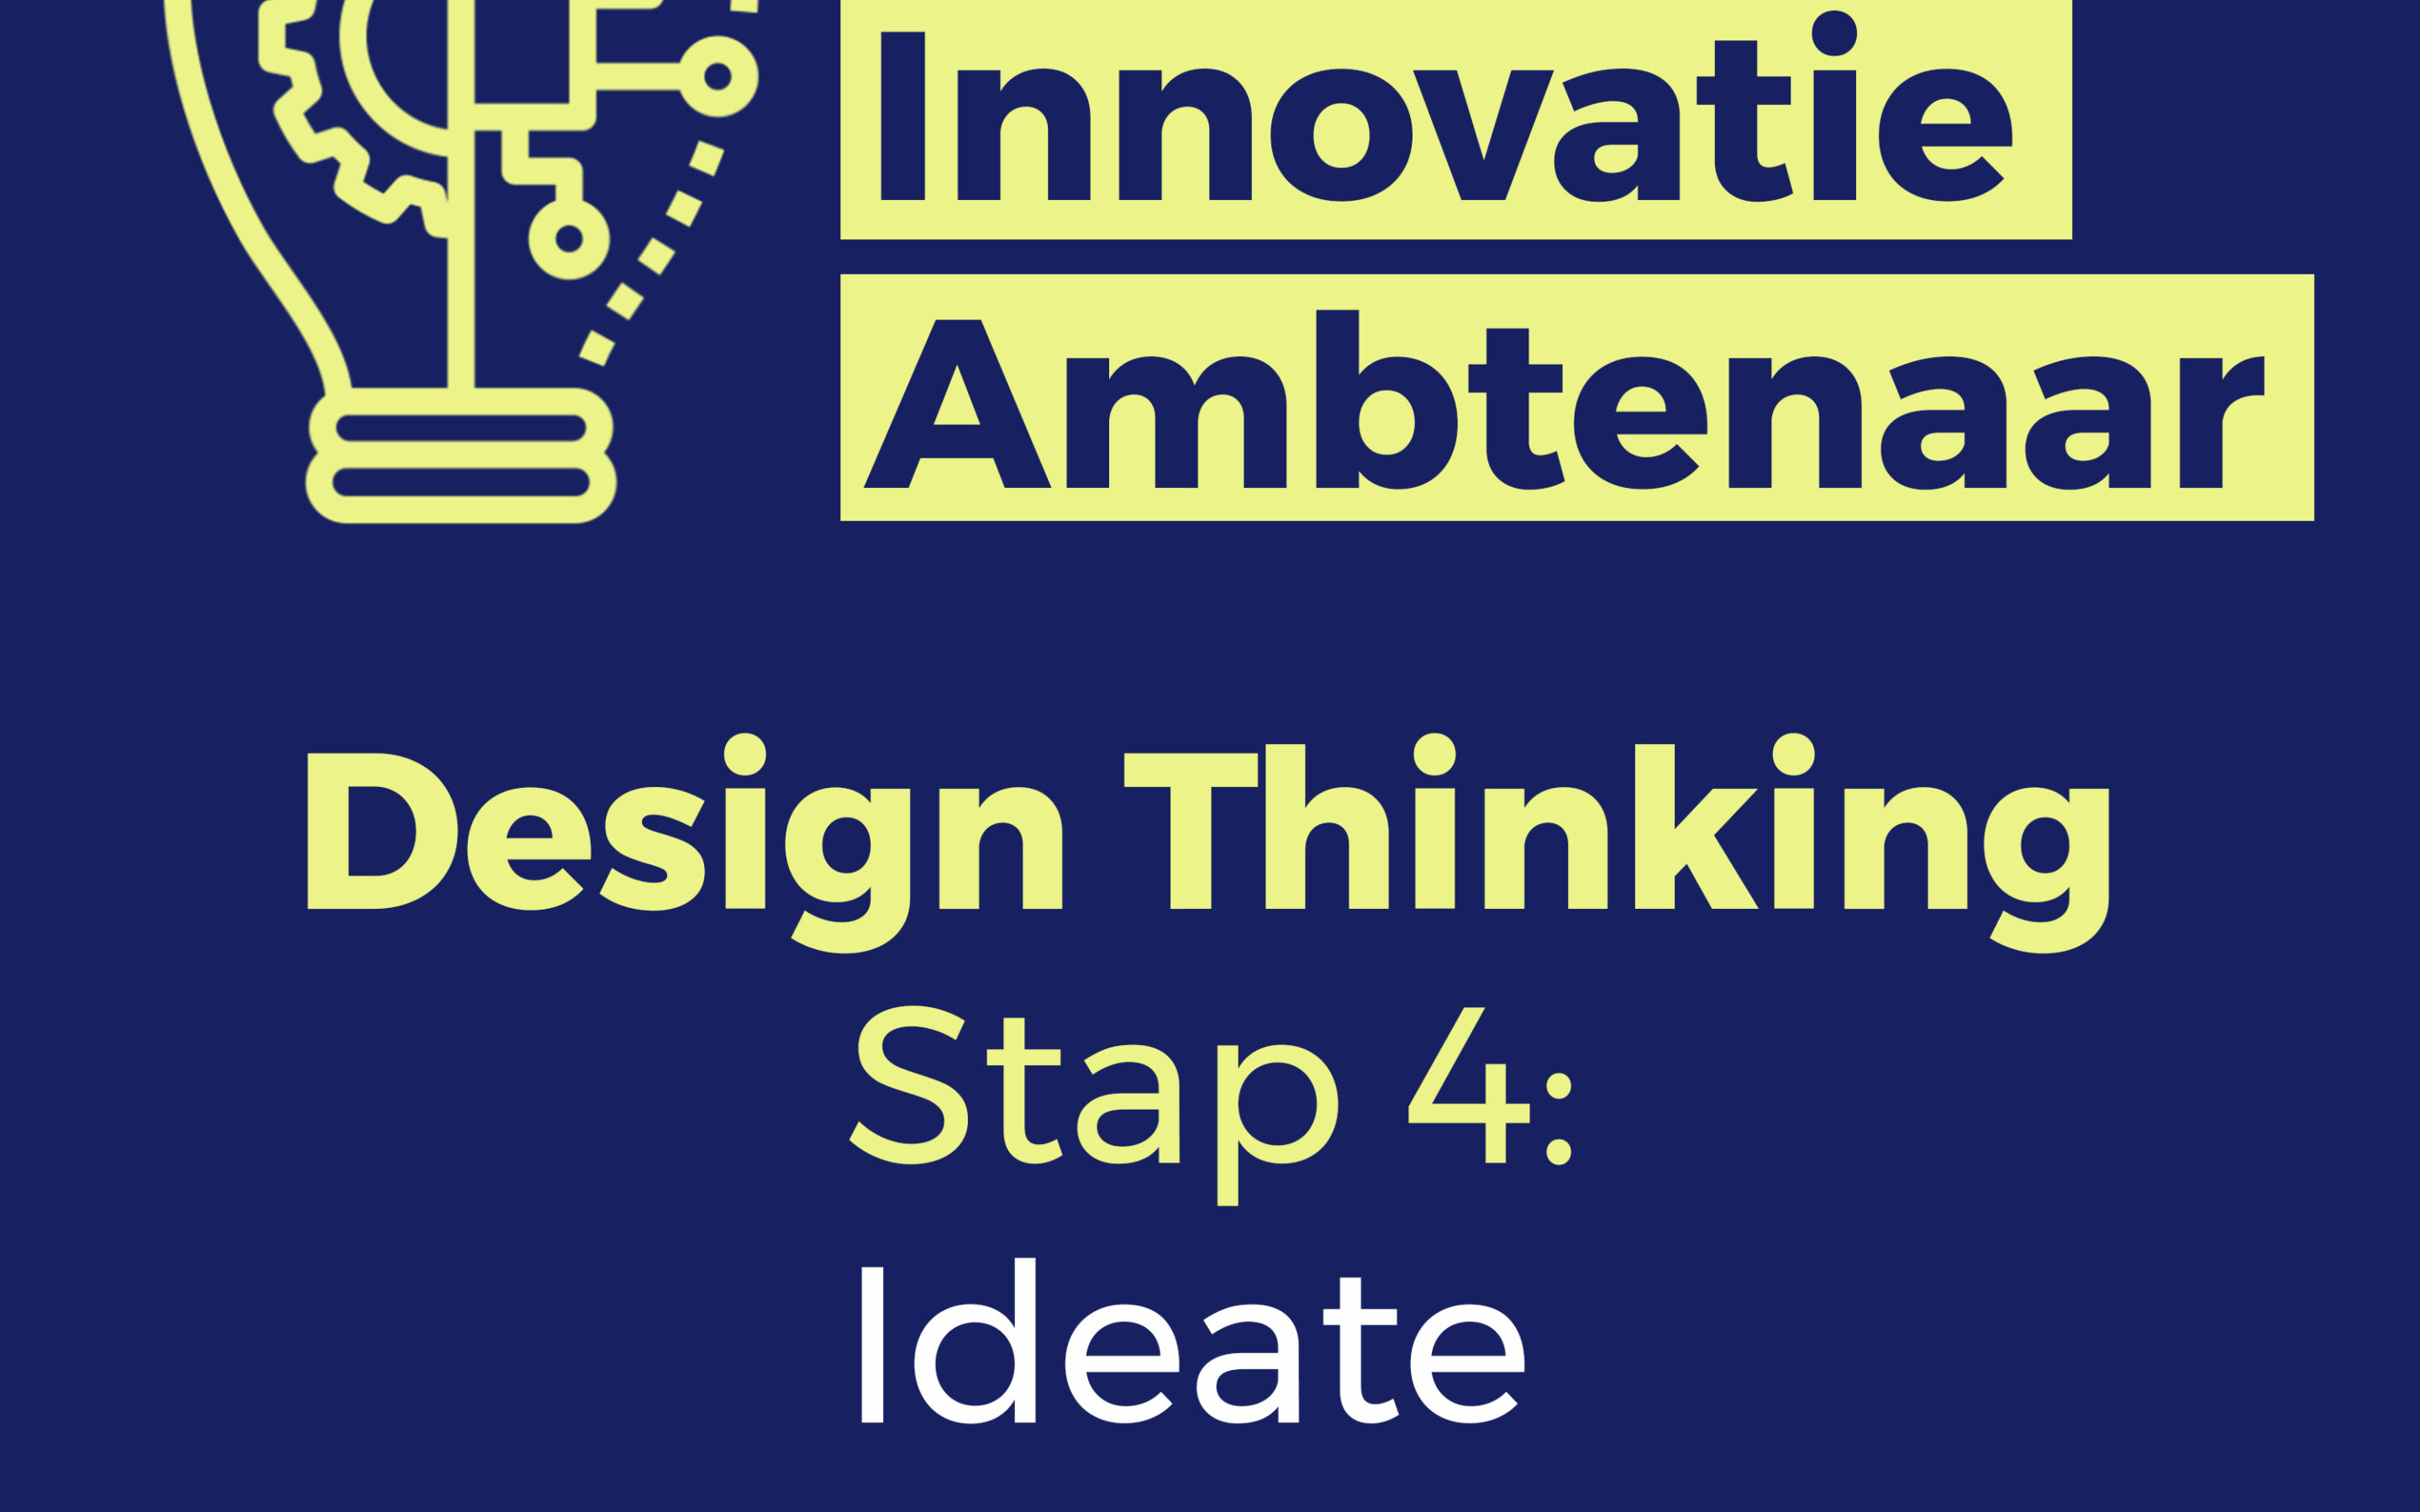 Design Thinking – Stap 4: Ideate